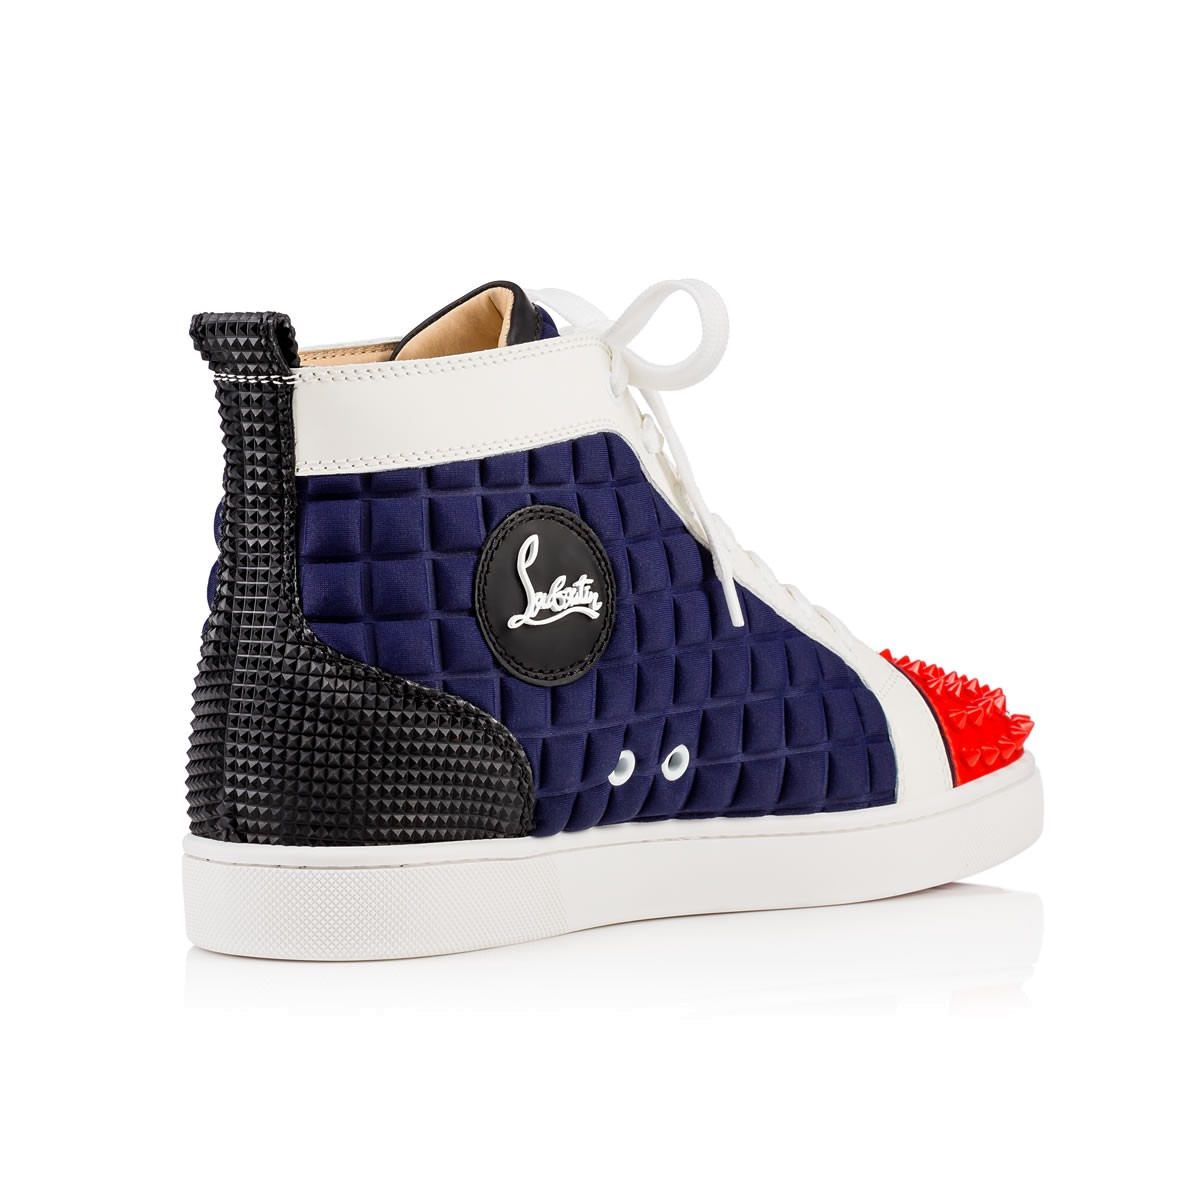 6fd5e433d0f8 canada lyst christian louboutin lou spikes neoprene high top sneakers in  blue for men 1d53d 5c997